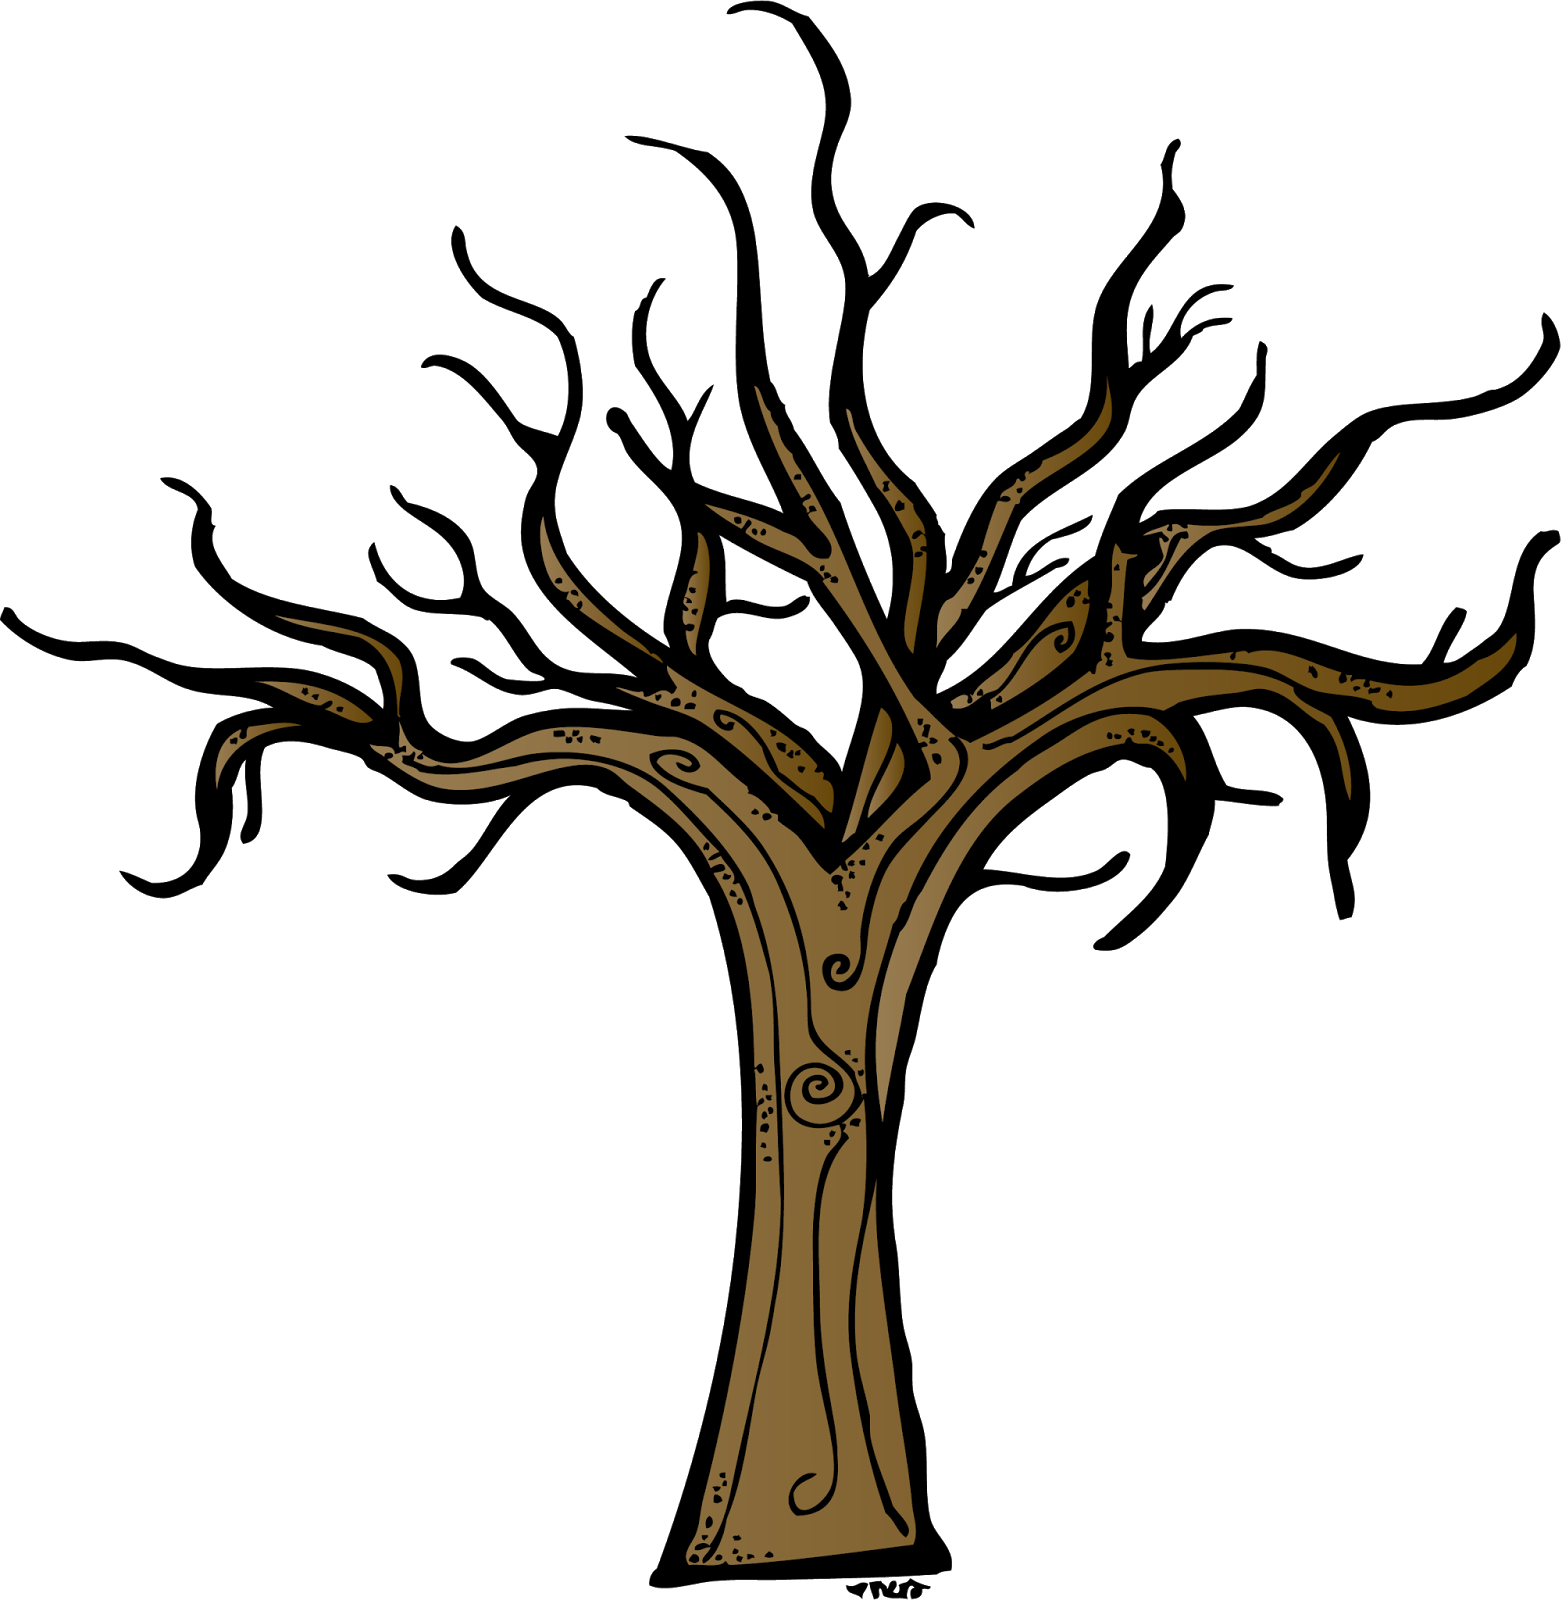 Dry trees clipart graphic royalty free stock Free Trunk Clipart dry tree, Download Free Clip Art on Owips.com graphic royalty free stock